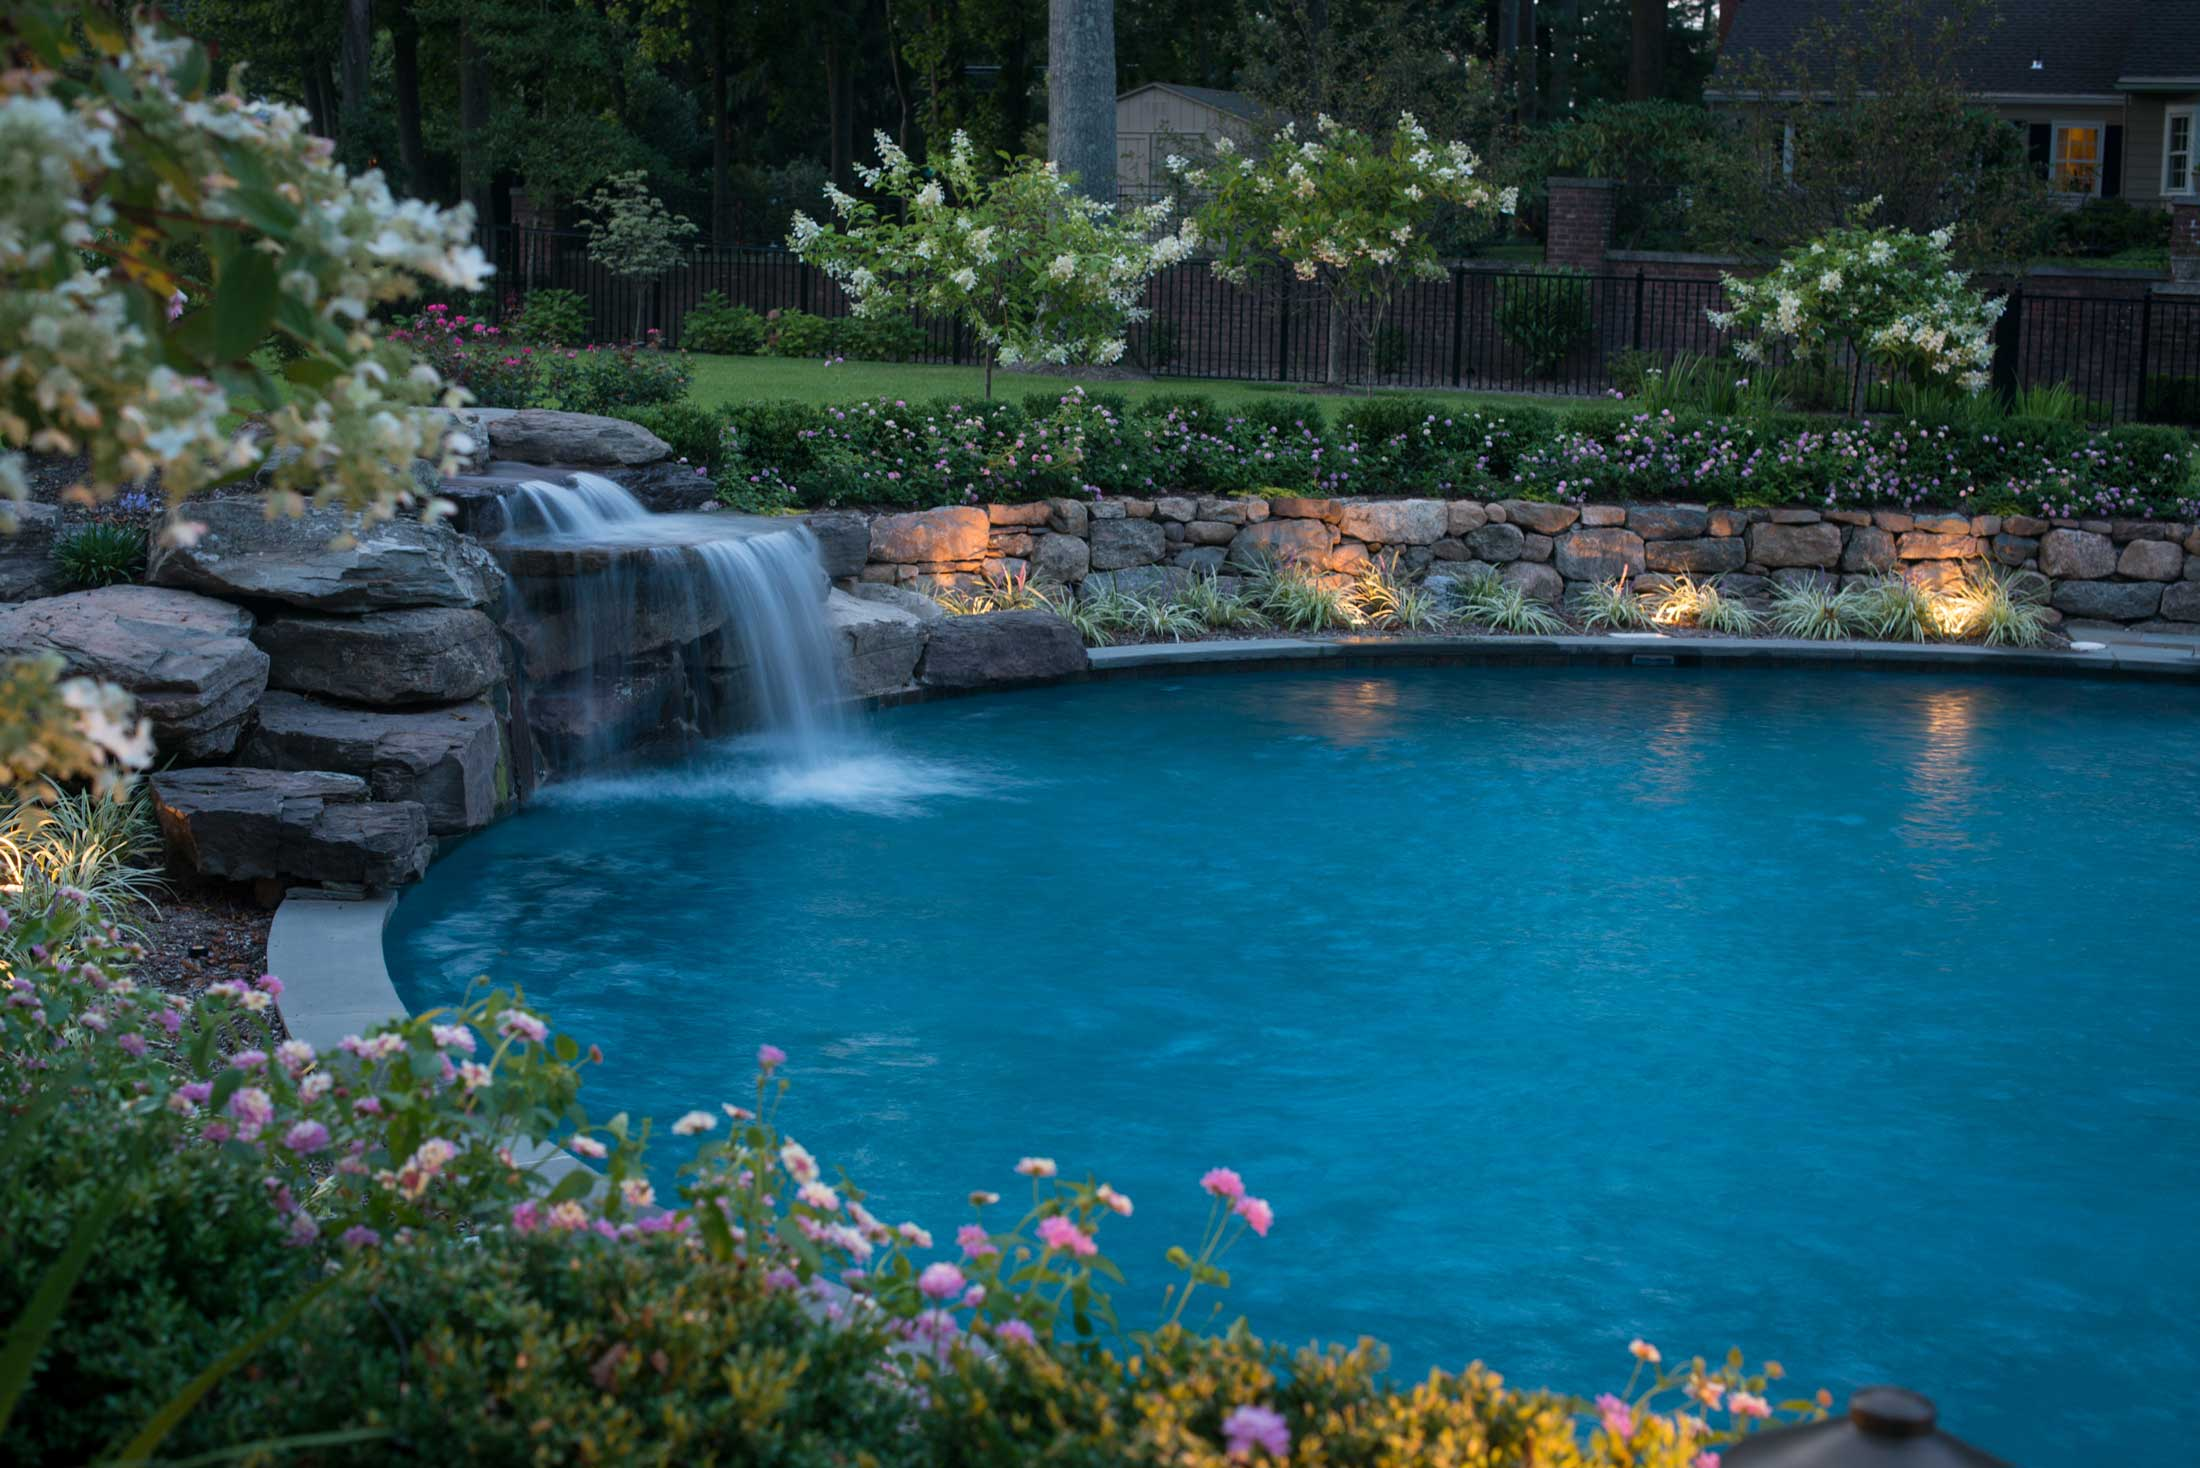 Swimming Pool Construction with custom waterfall feature